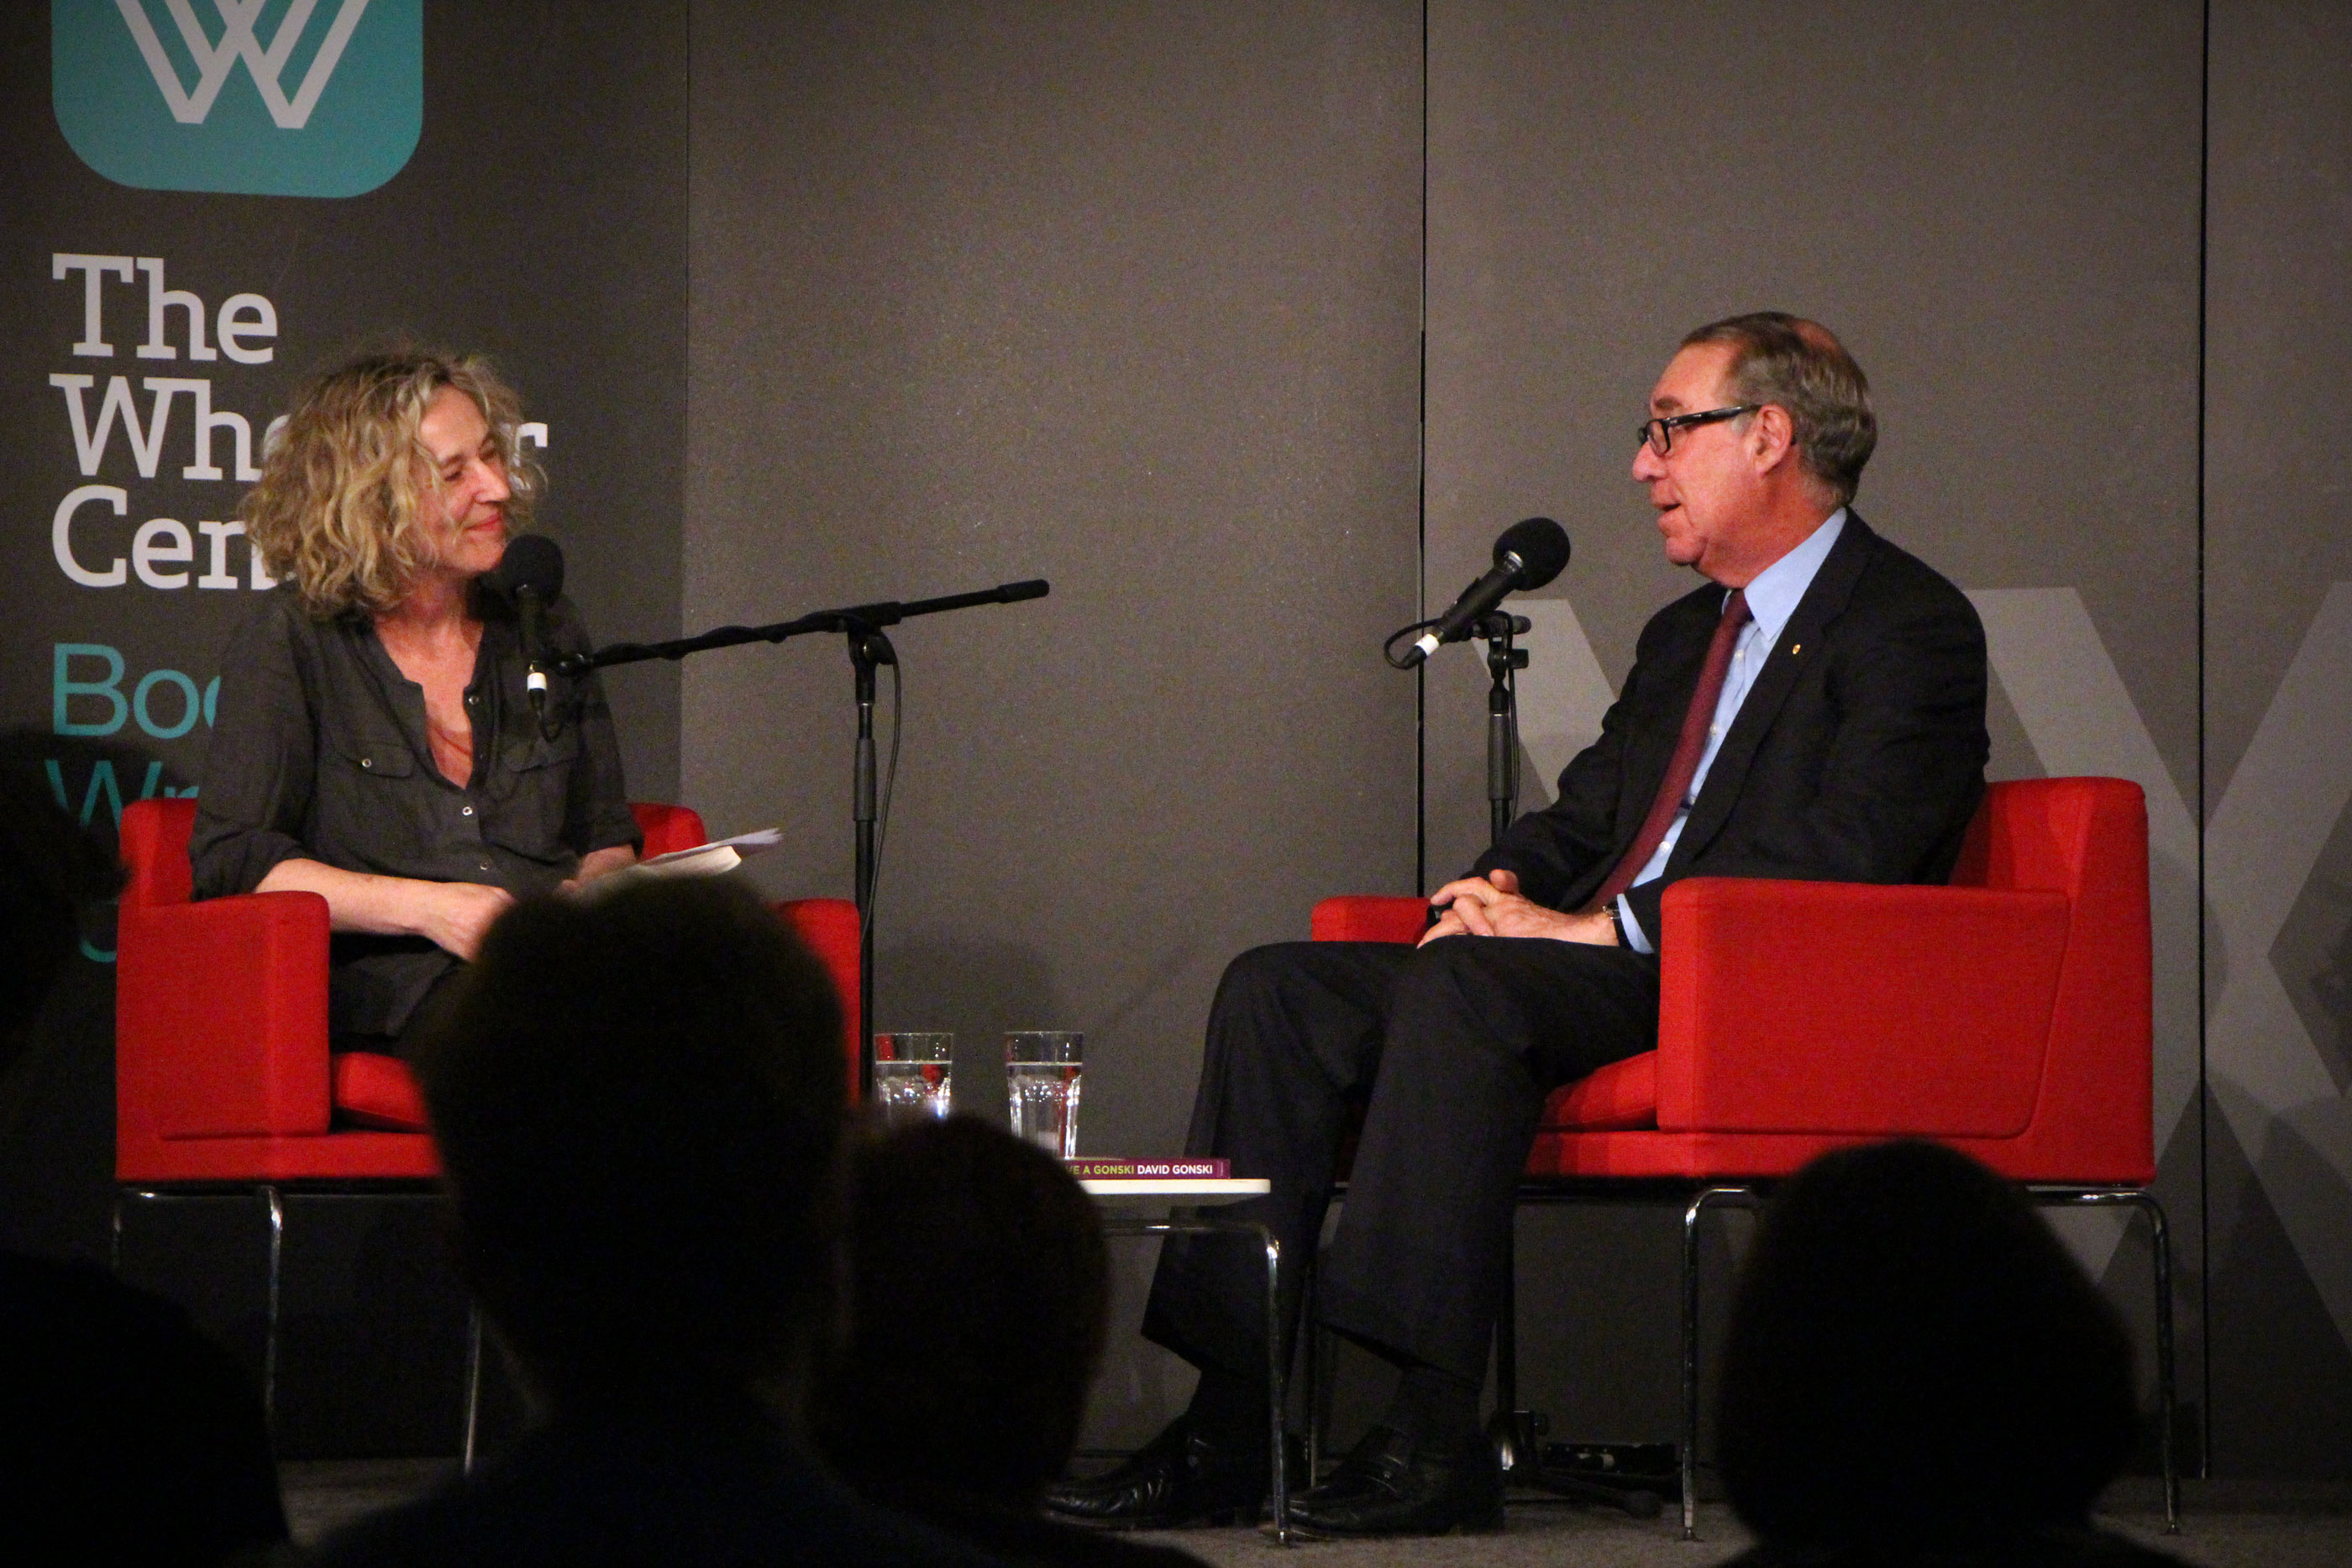 Sally Warhaft chats with David Gonski for the Fifth Estate